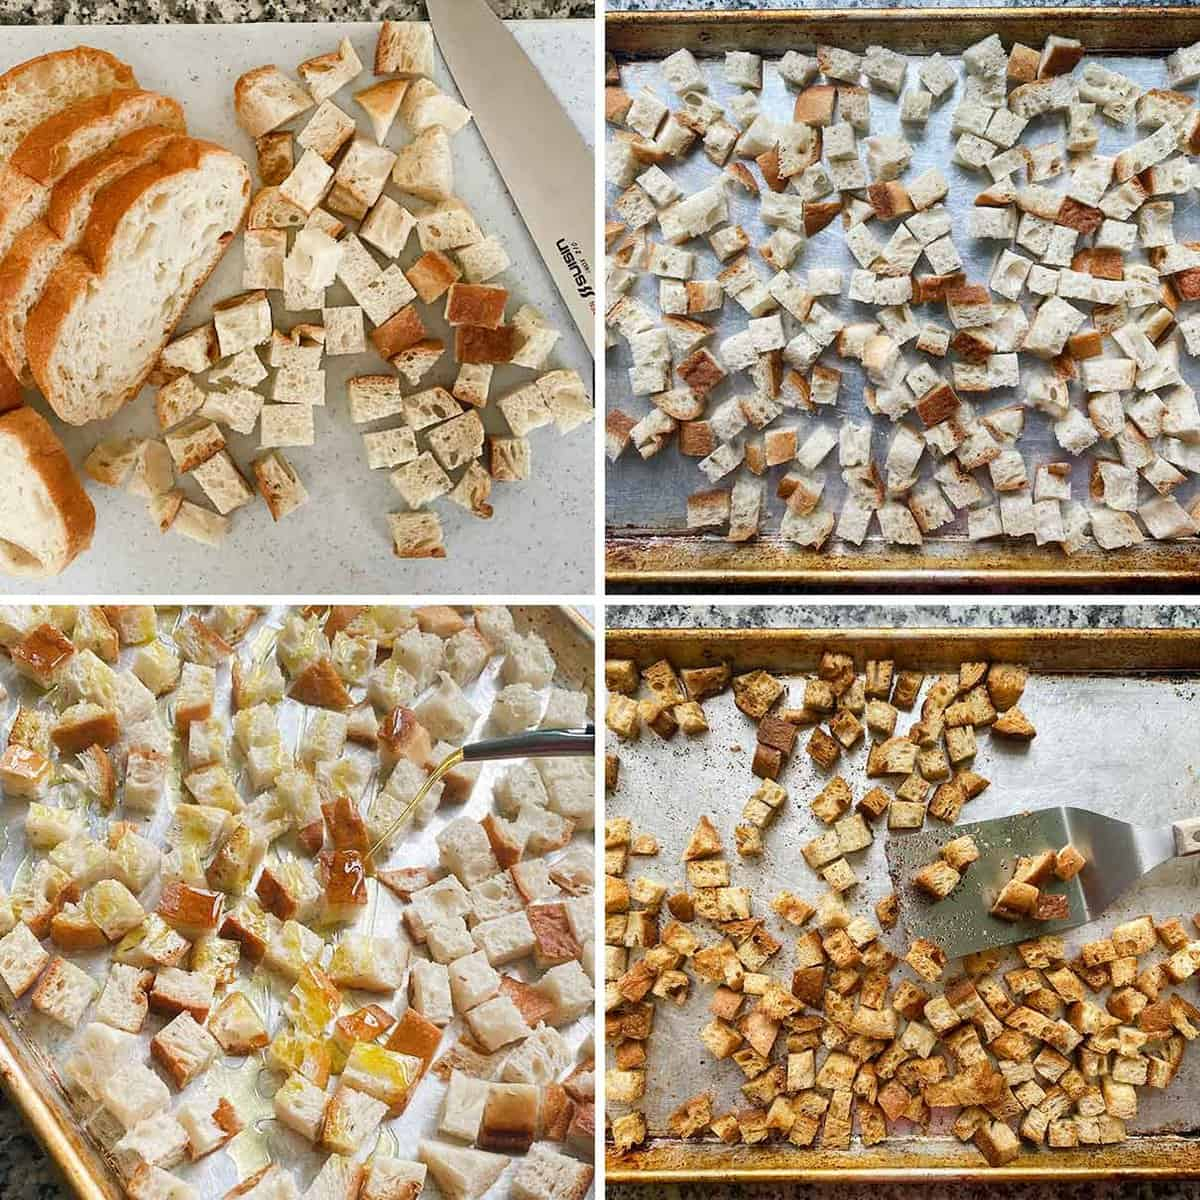 Bowl of salad in foreground topped with croutons, with croutons scattered in the background.